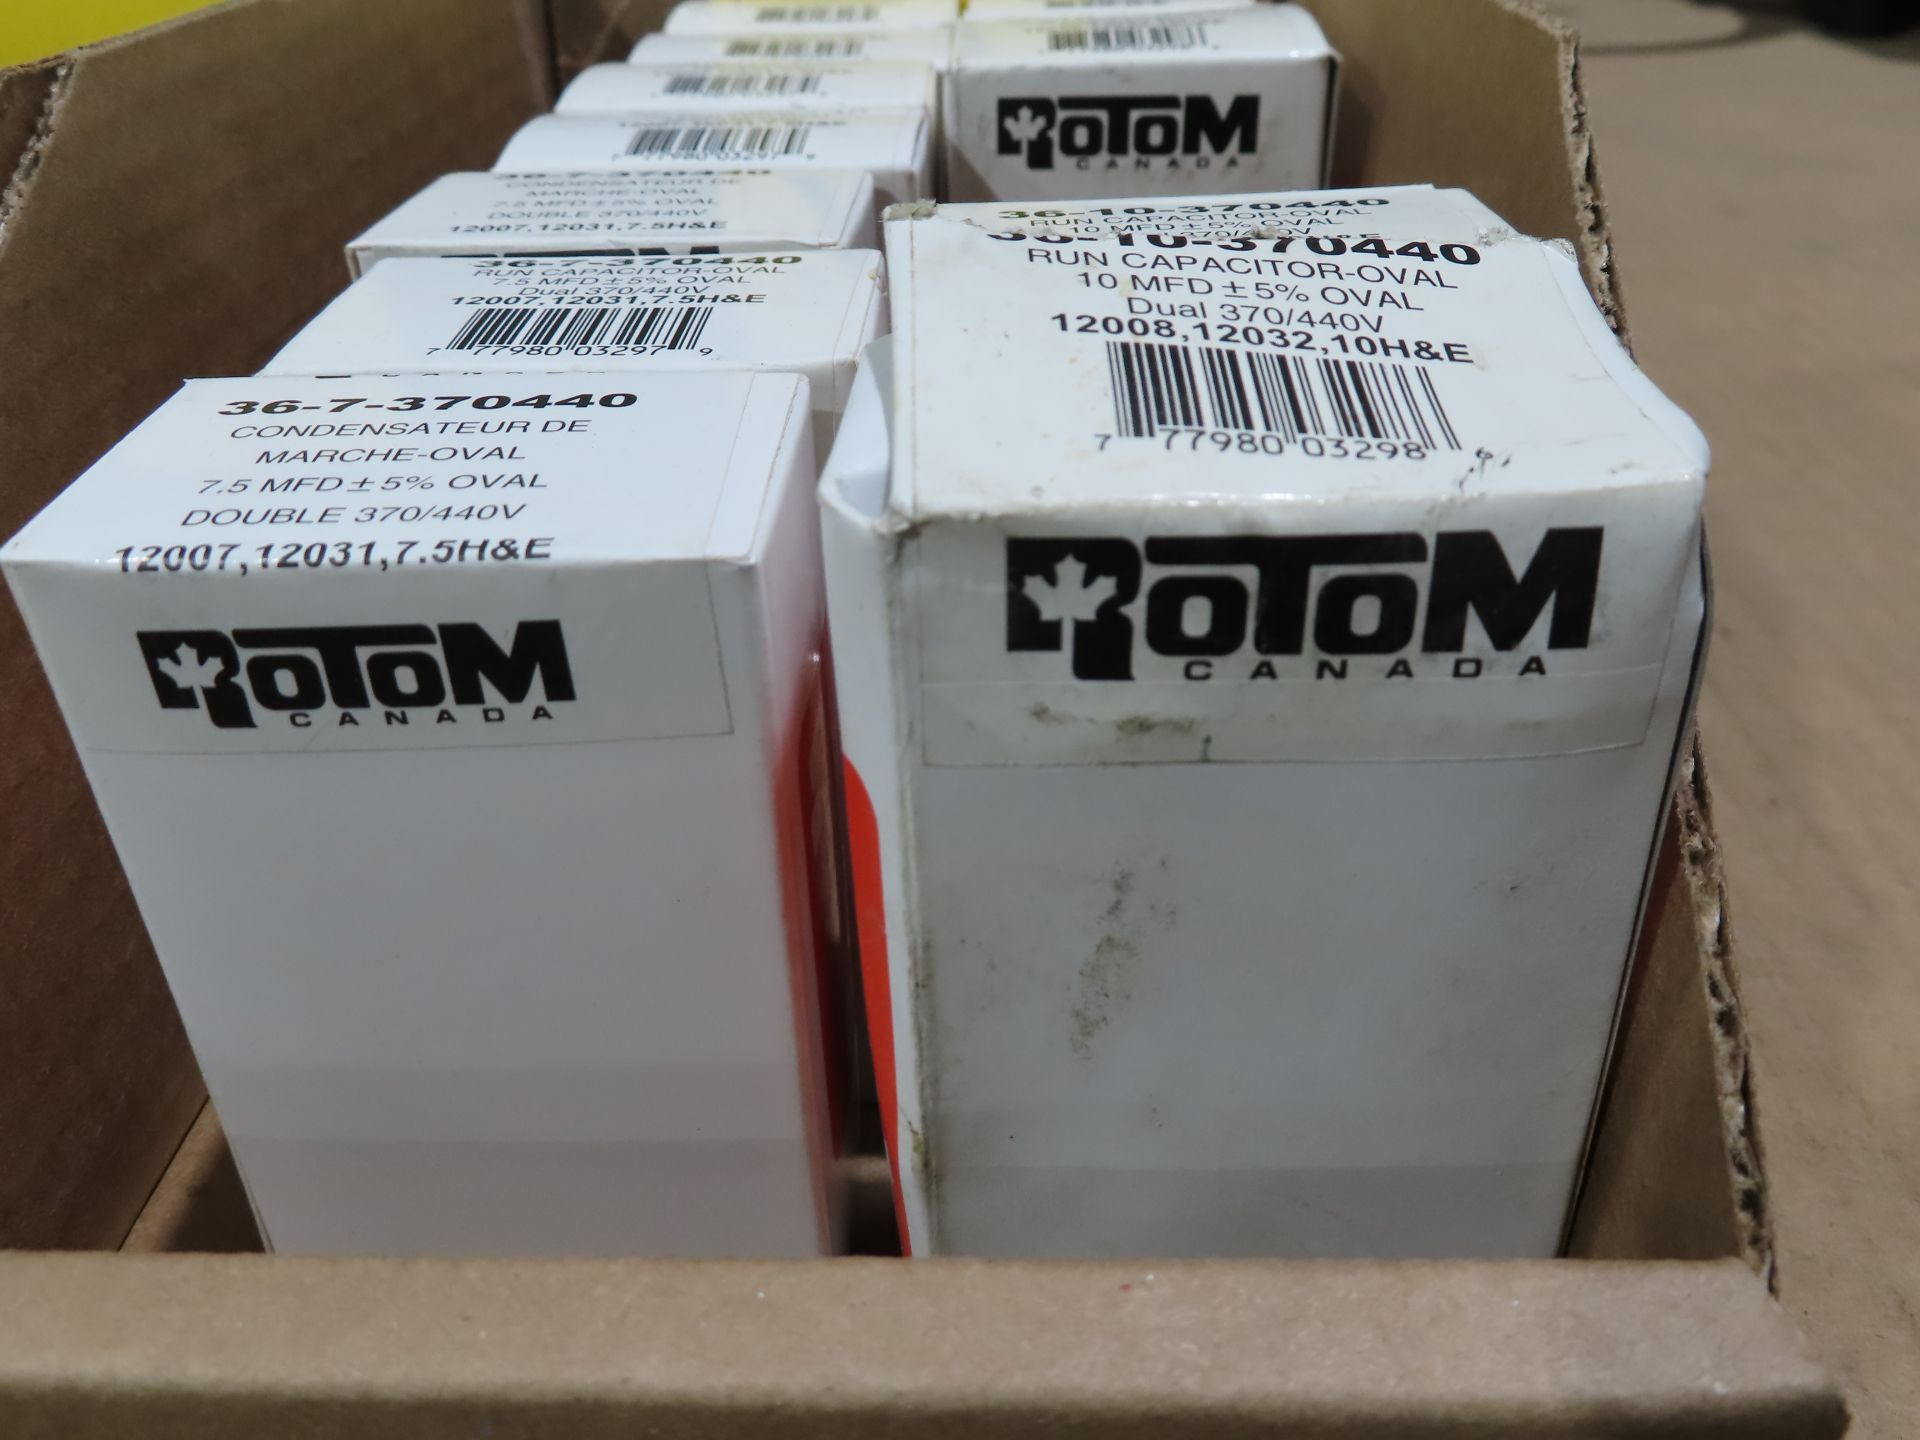 Lot 29 - Qty 12 Rotom capacitors, (9) model 36-7-370440, (3) model 36-10-370440, new in boxes, as always,